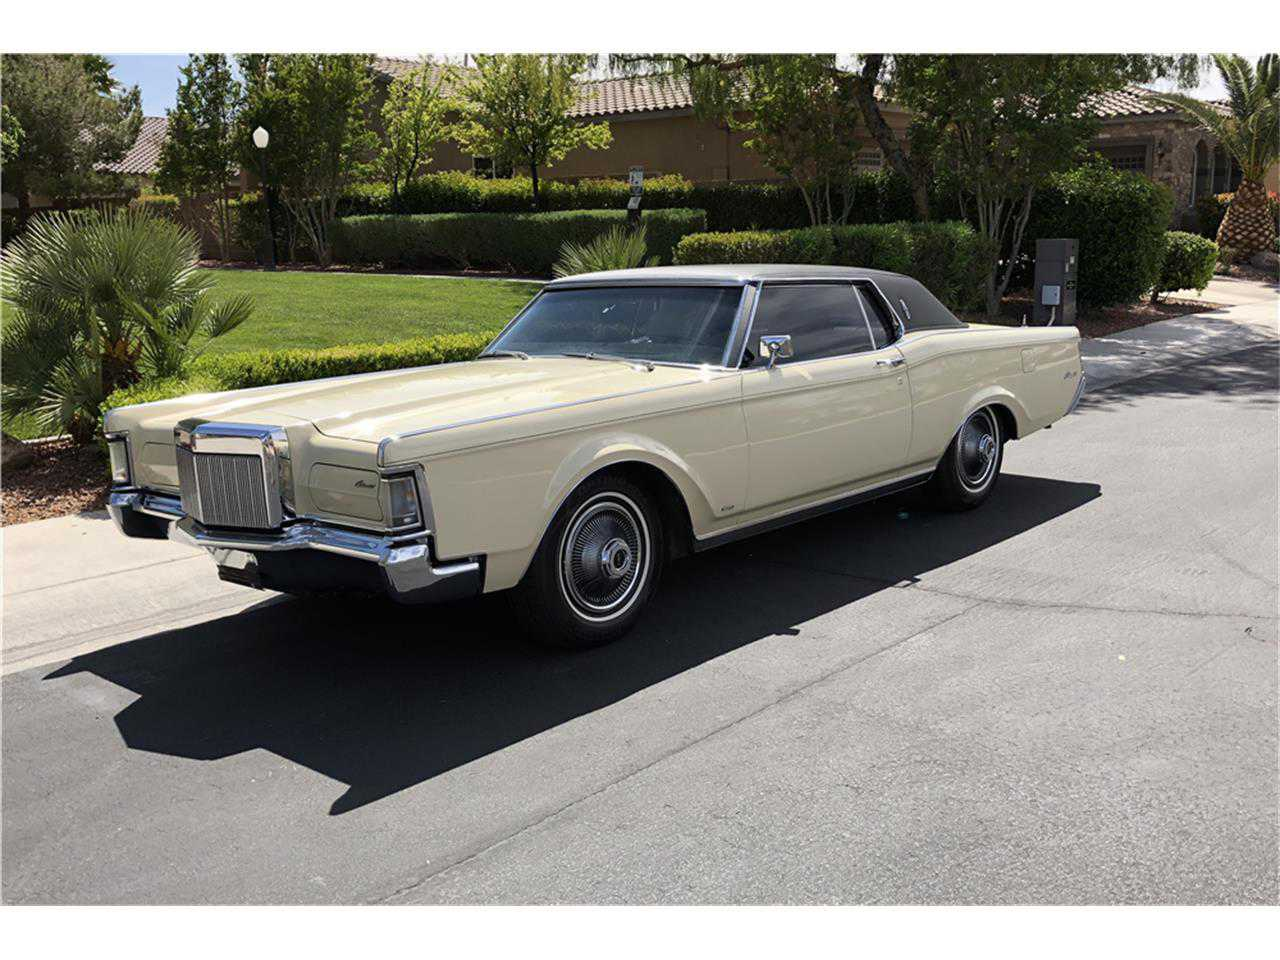 1969 Lincoln Continental Mark Iii For Sale In 9y89a859079